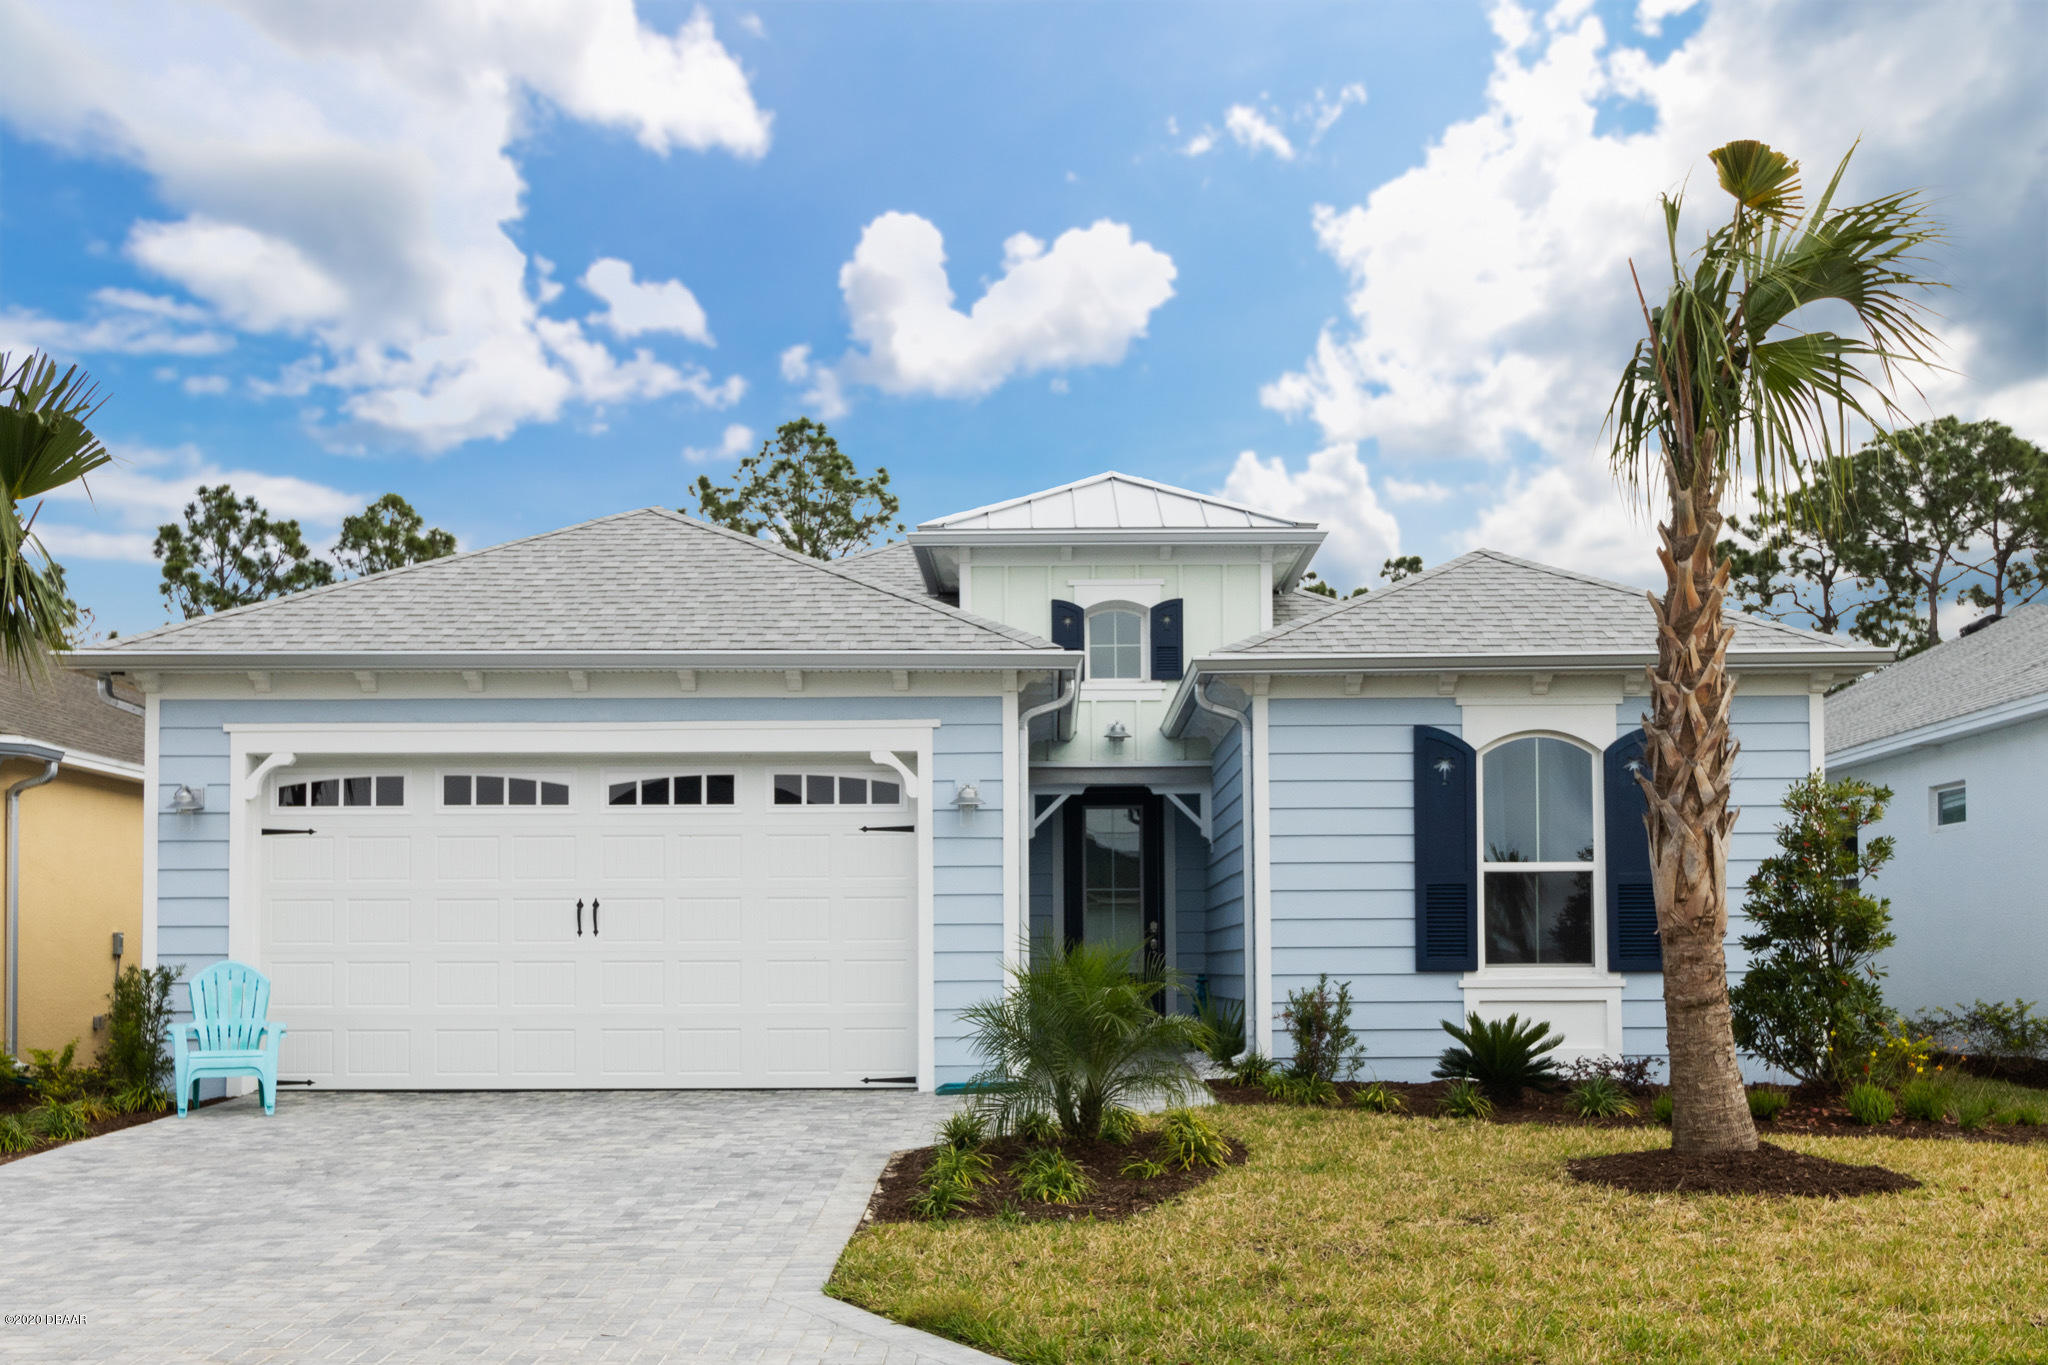 Photo of 656 Land Shark Boulevard, Daytona Beach, FL 32124